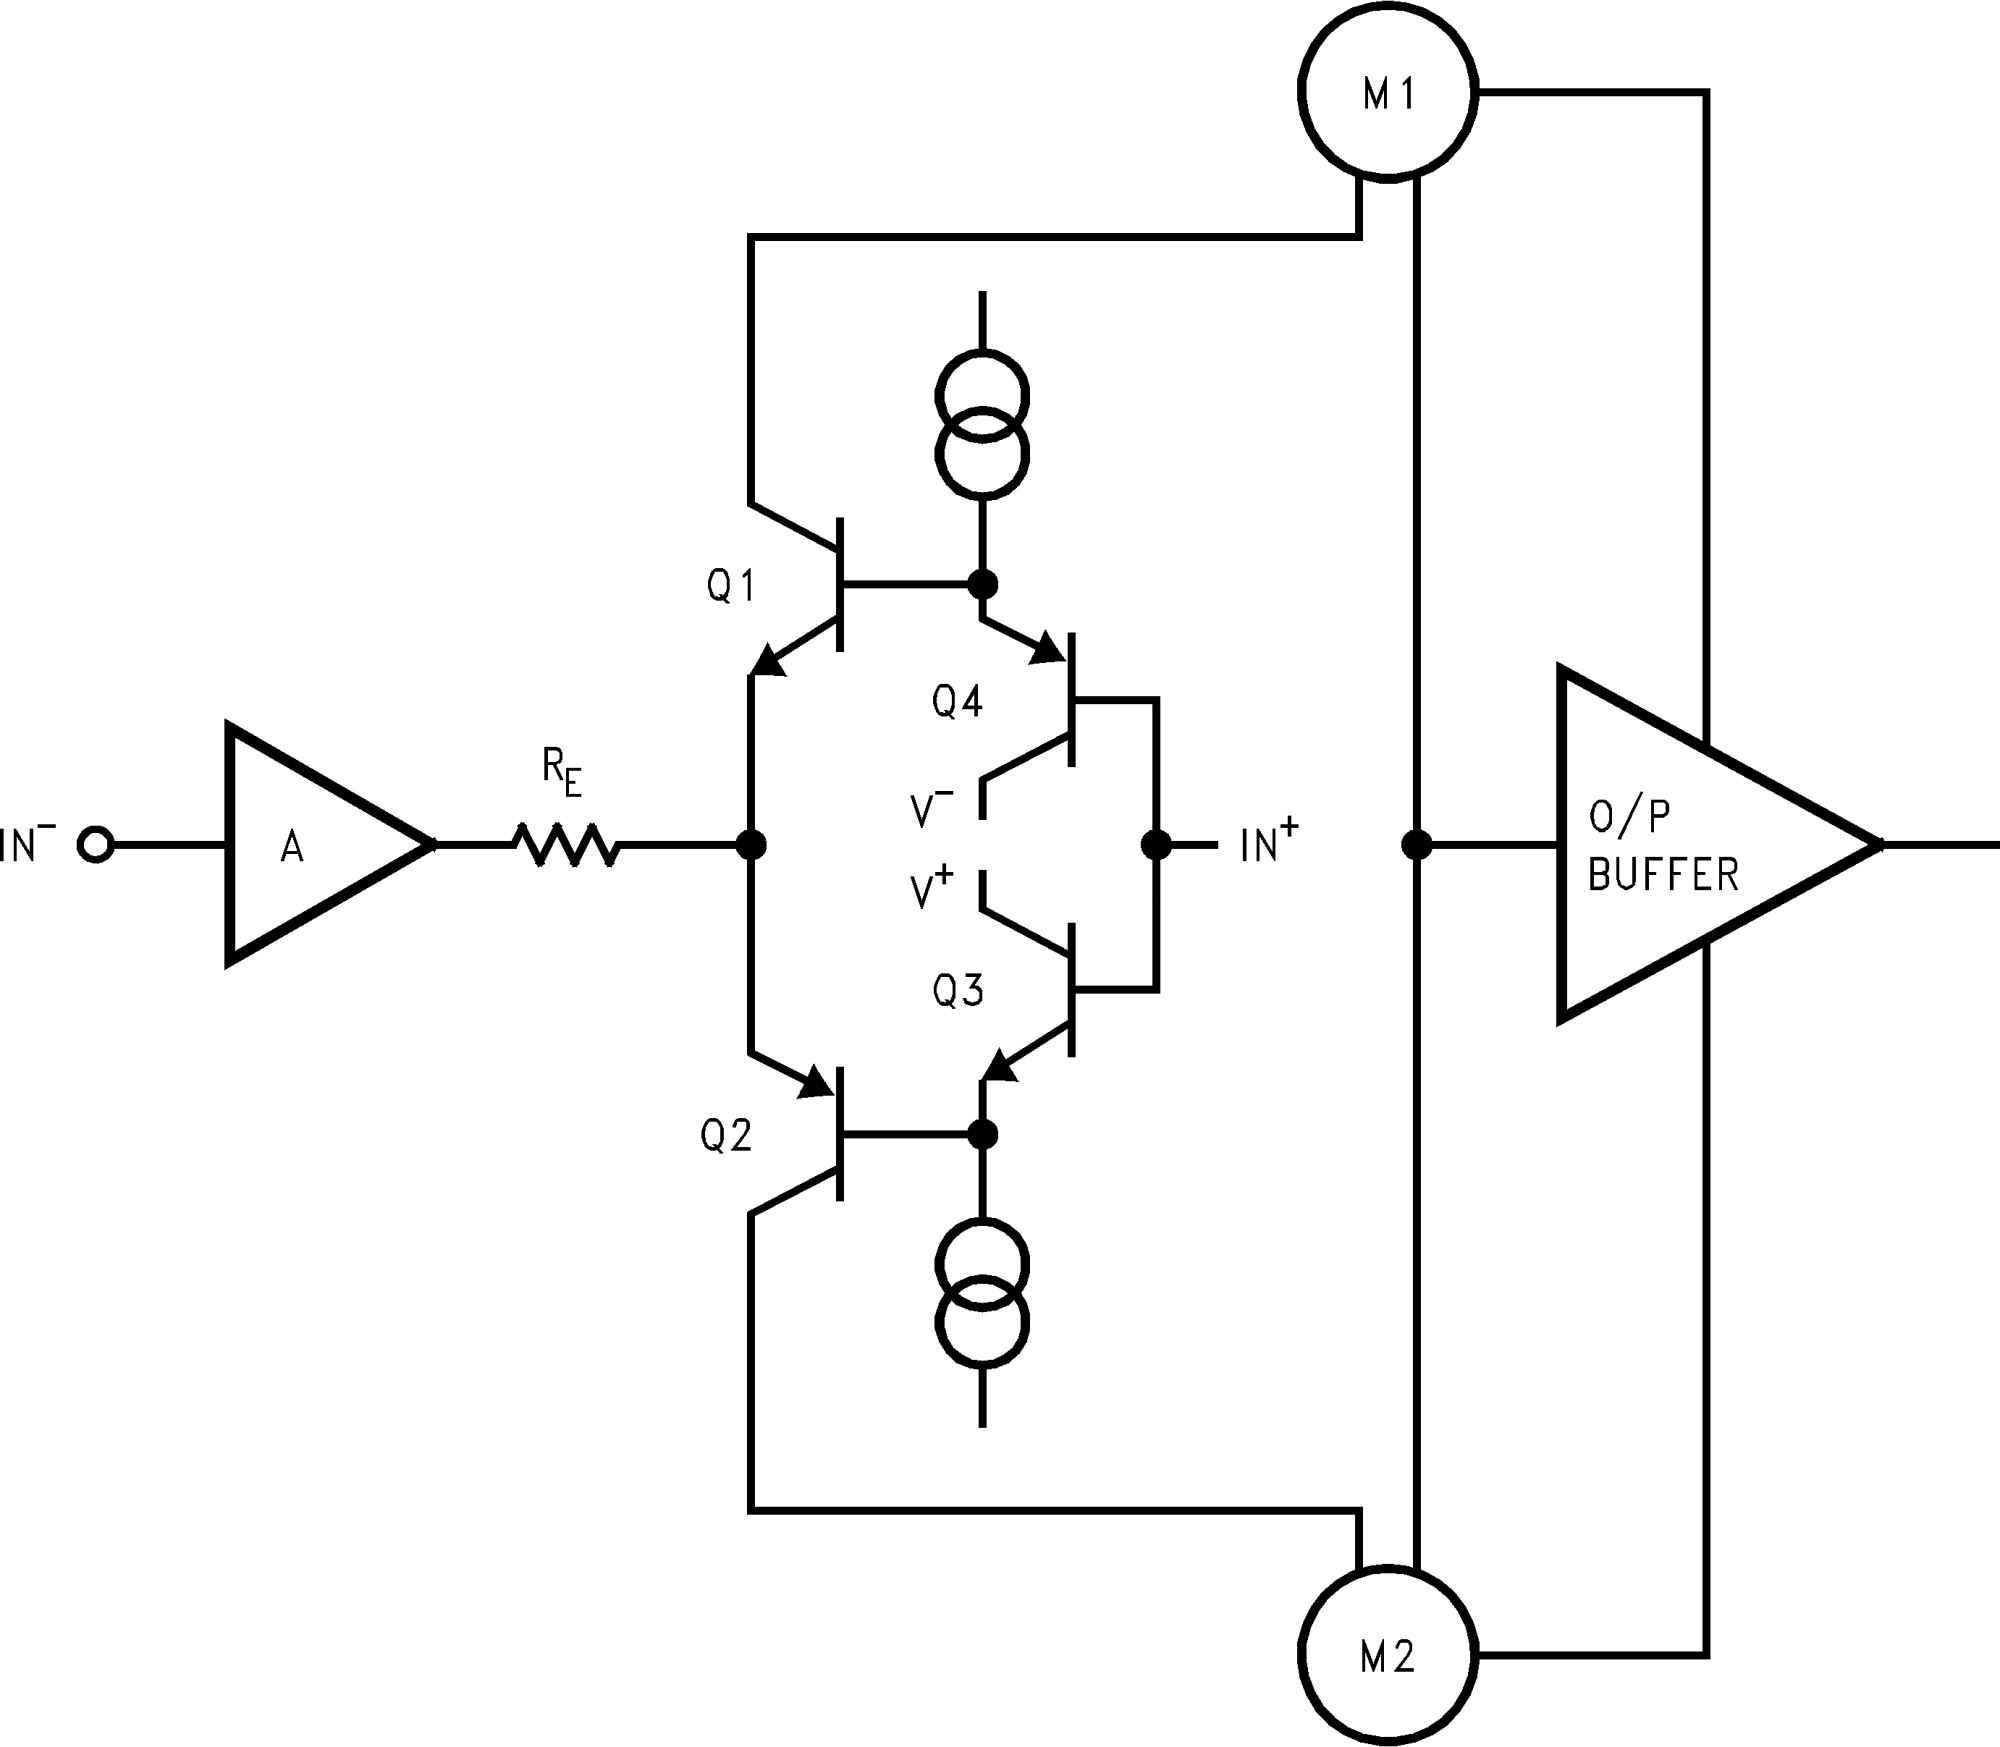 hight resolution of simplified schematic diagram